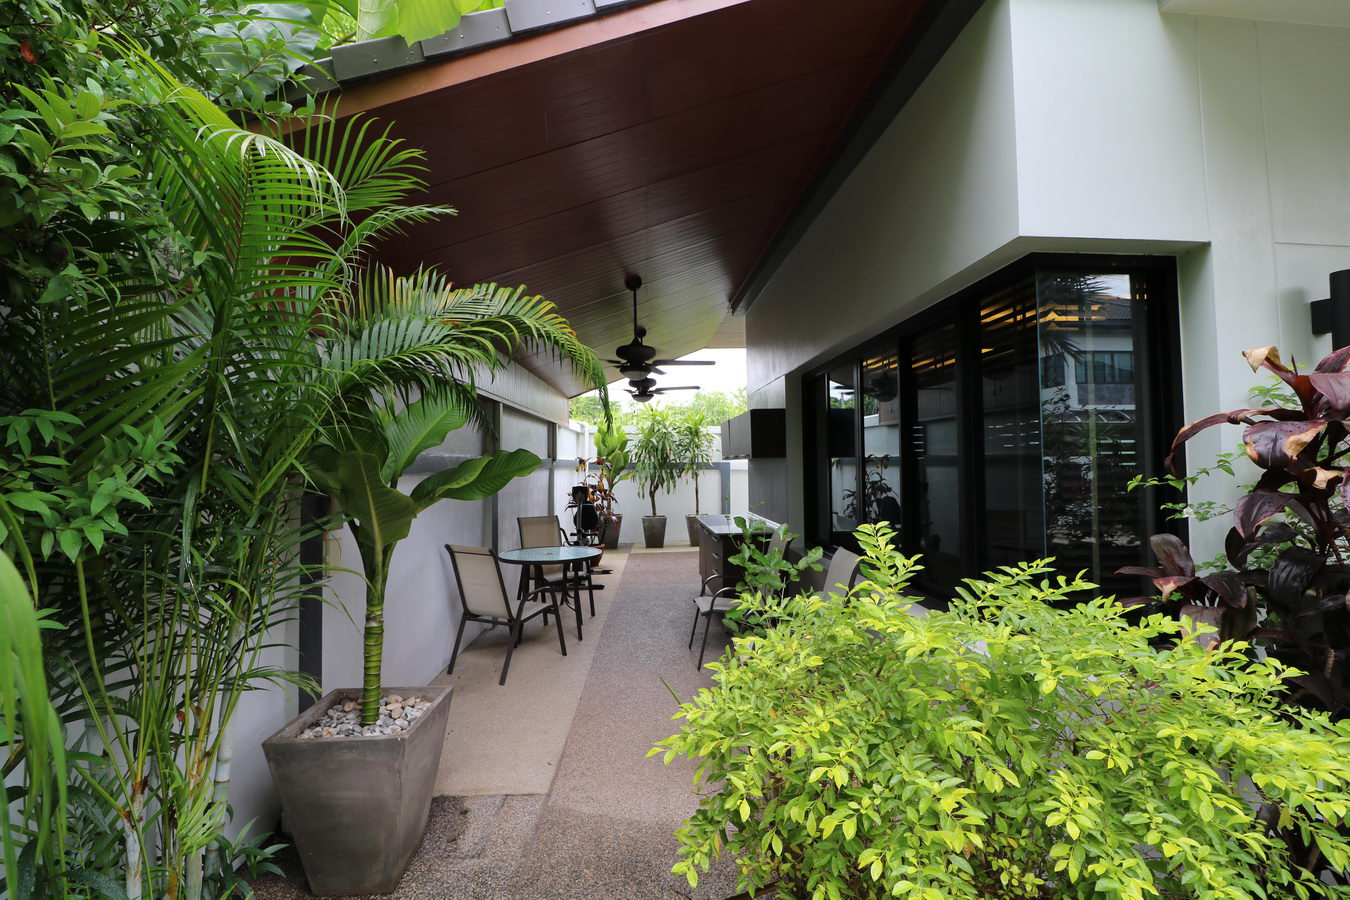 3 bed 4 bath 2 storey home for sale in udon thani for 2 storey house for sale